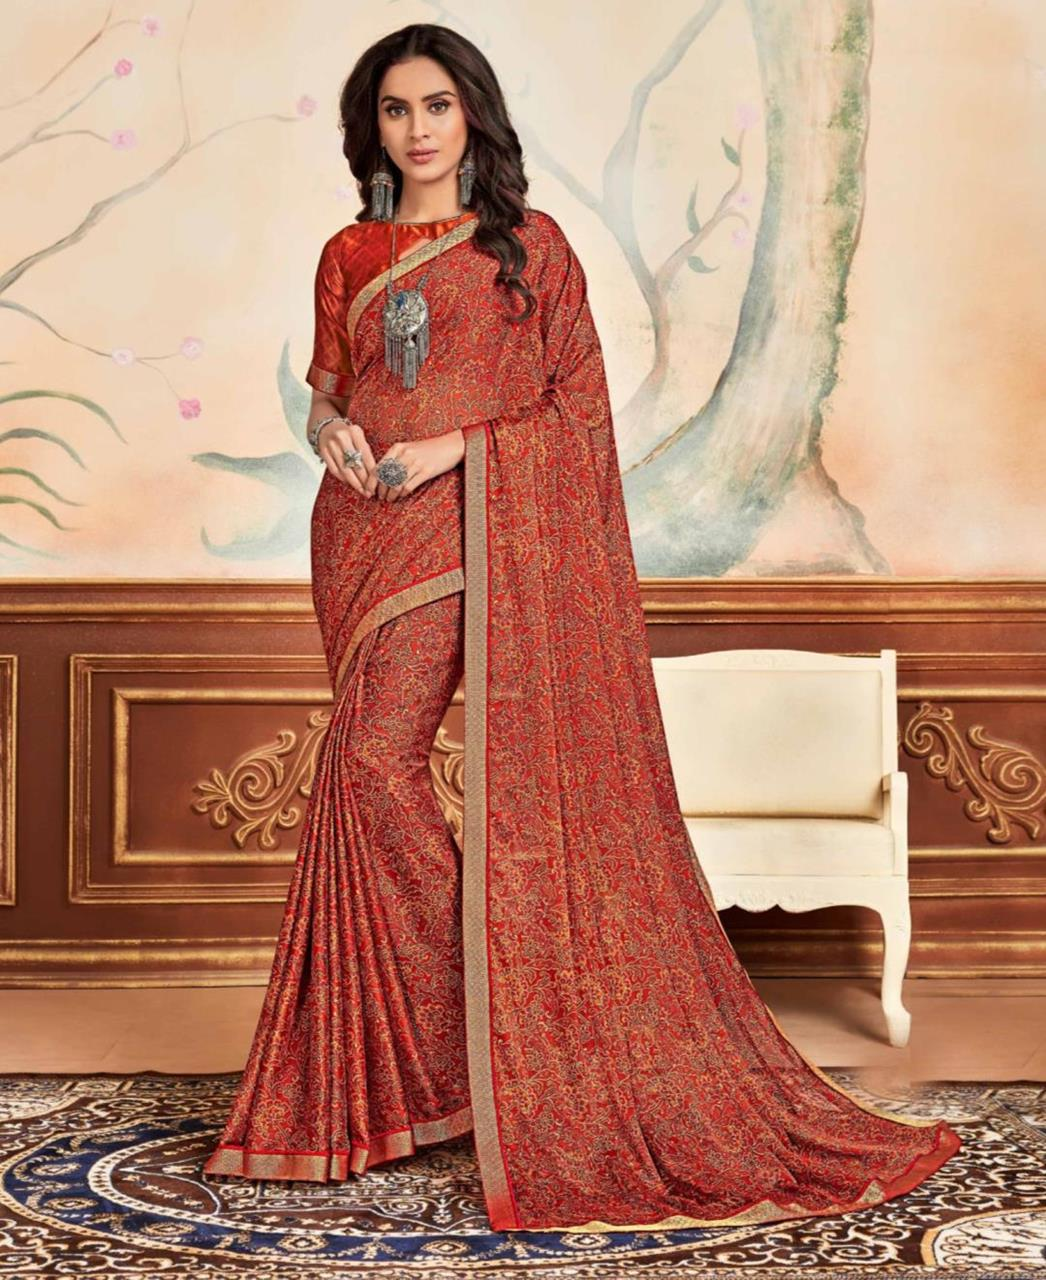 Lace Chiffon Saree in Red